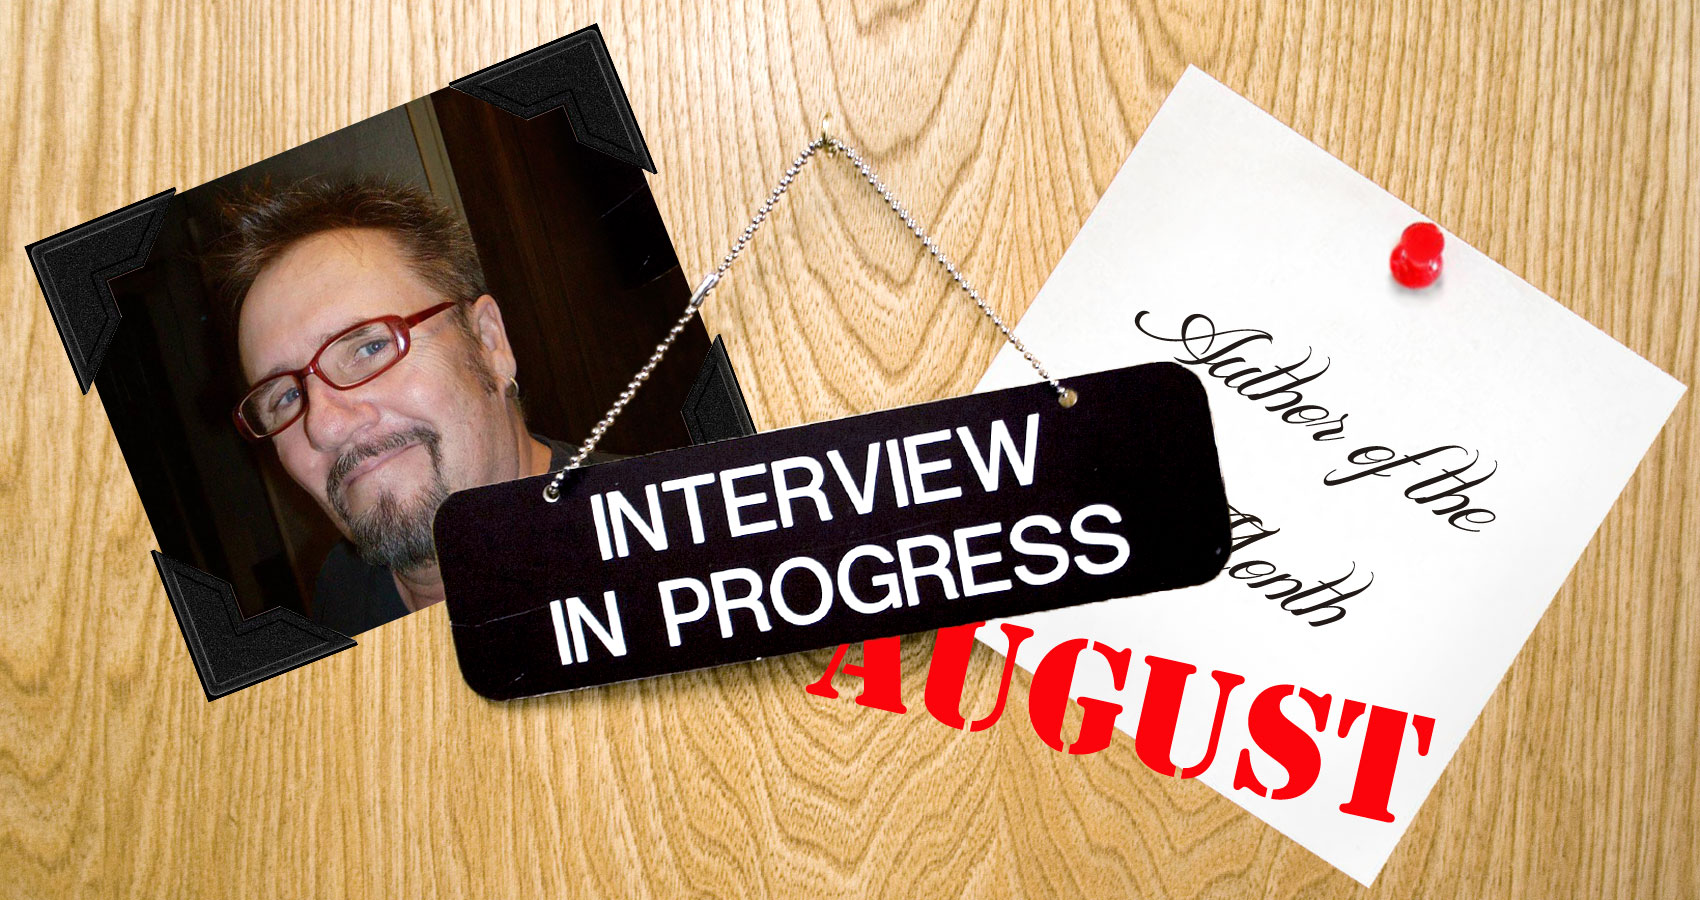 Interview Q&A with Ken Allan Dronsfield, a writer at Spillwords.com